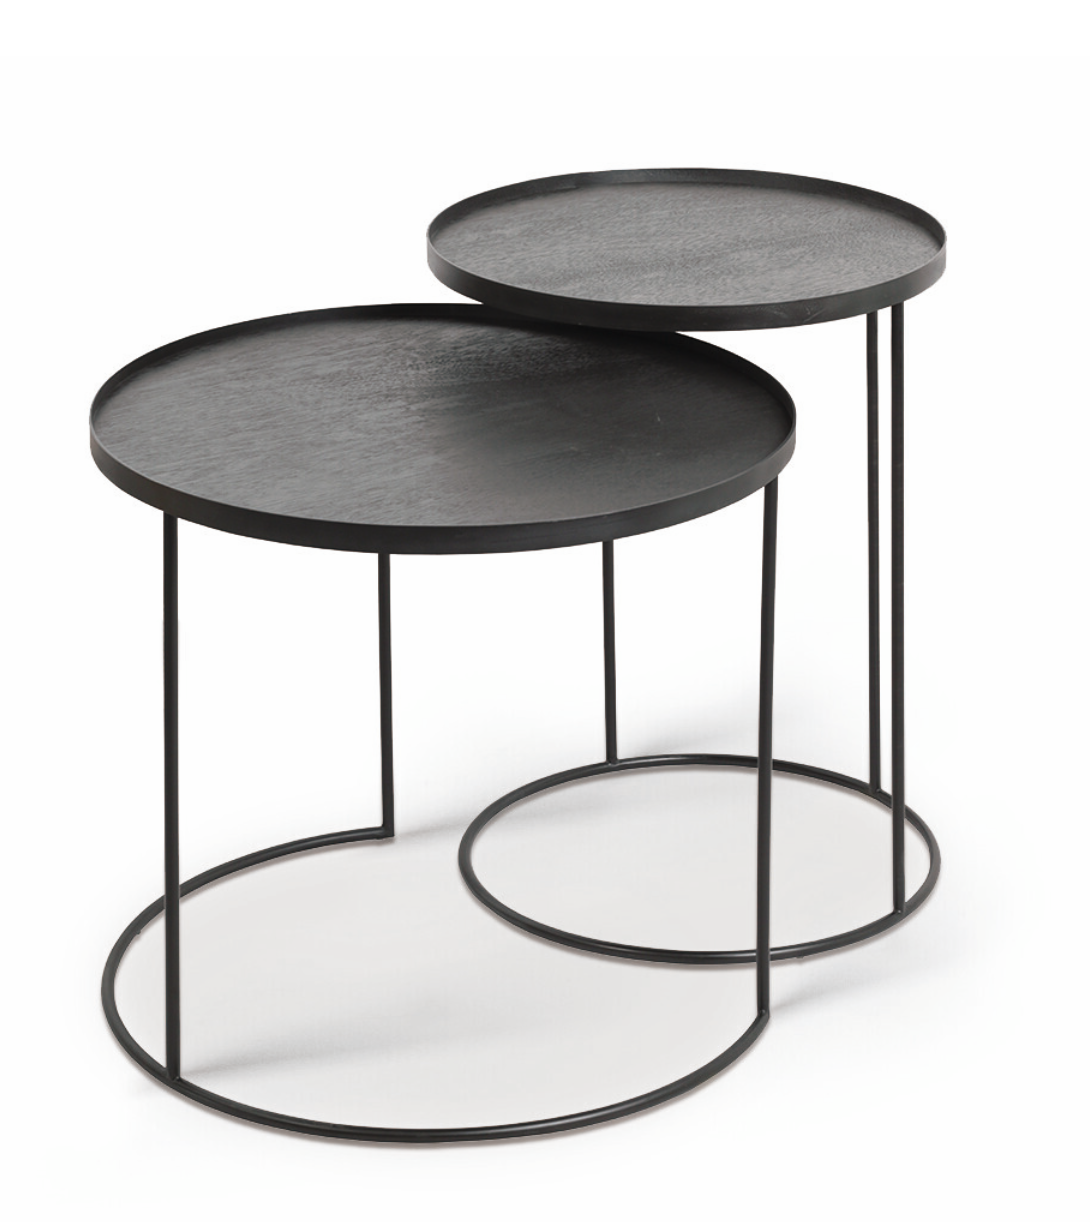 Round tray side table set-1